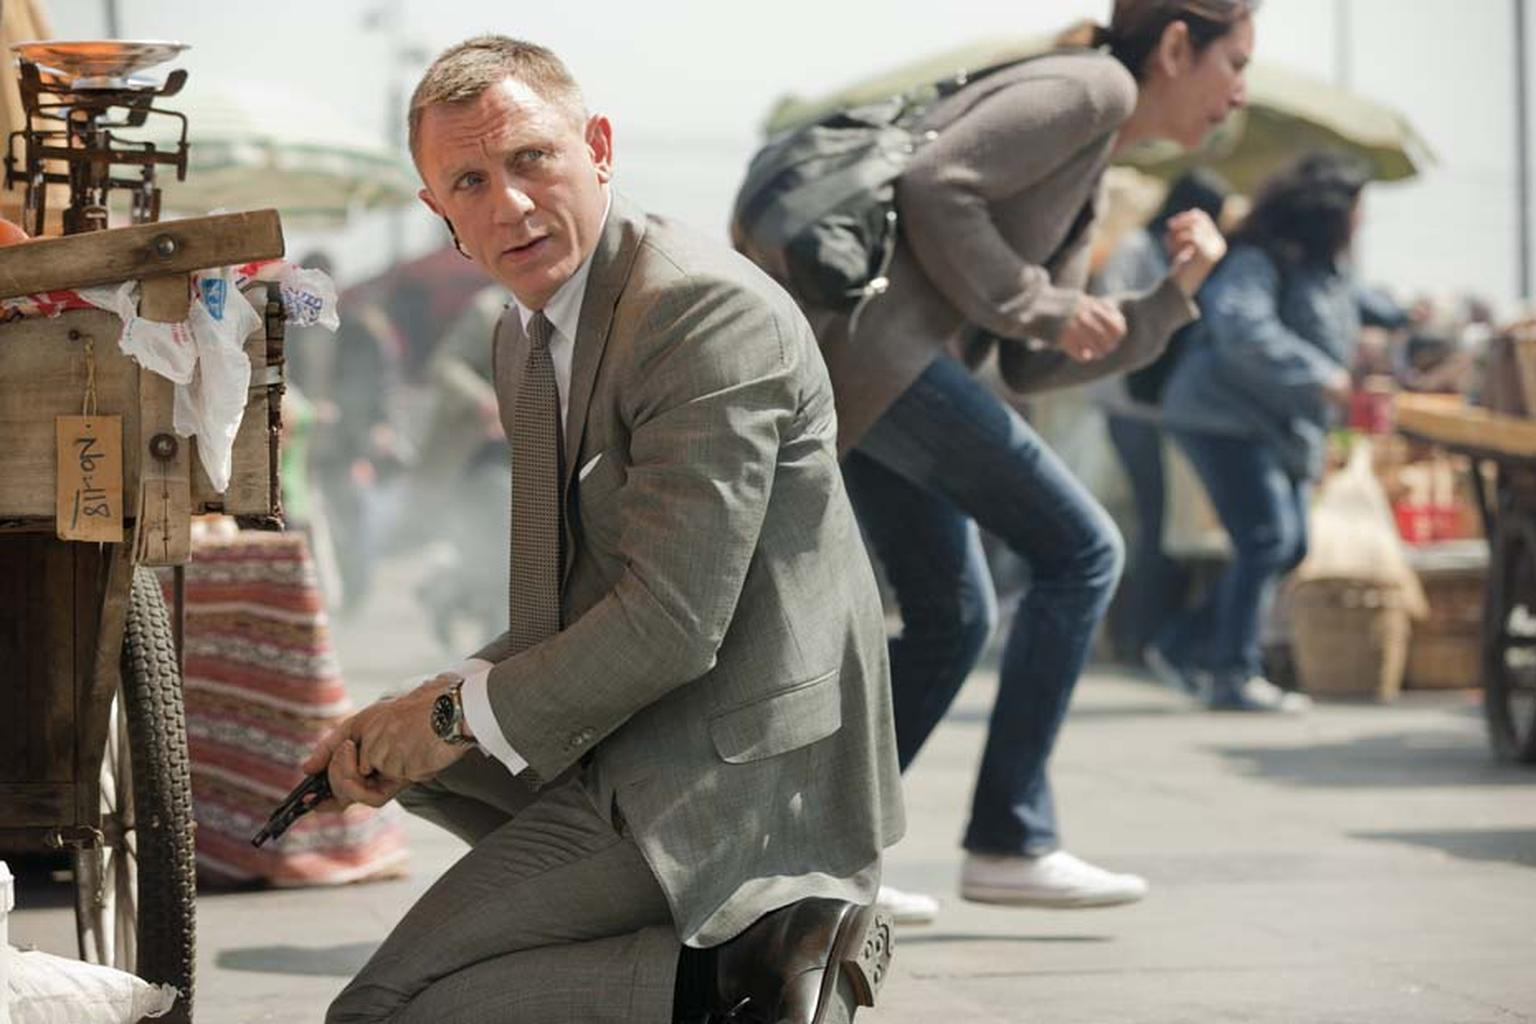 Daniel Craig in Skyfall sporting the OMEGA Seamaster watch.